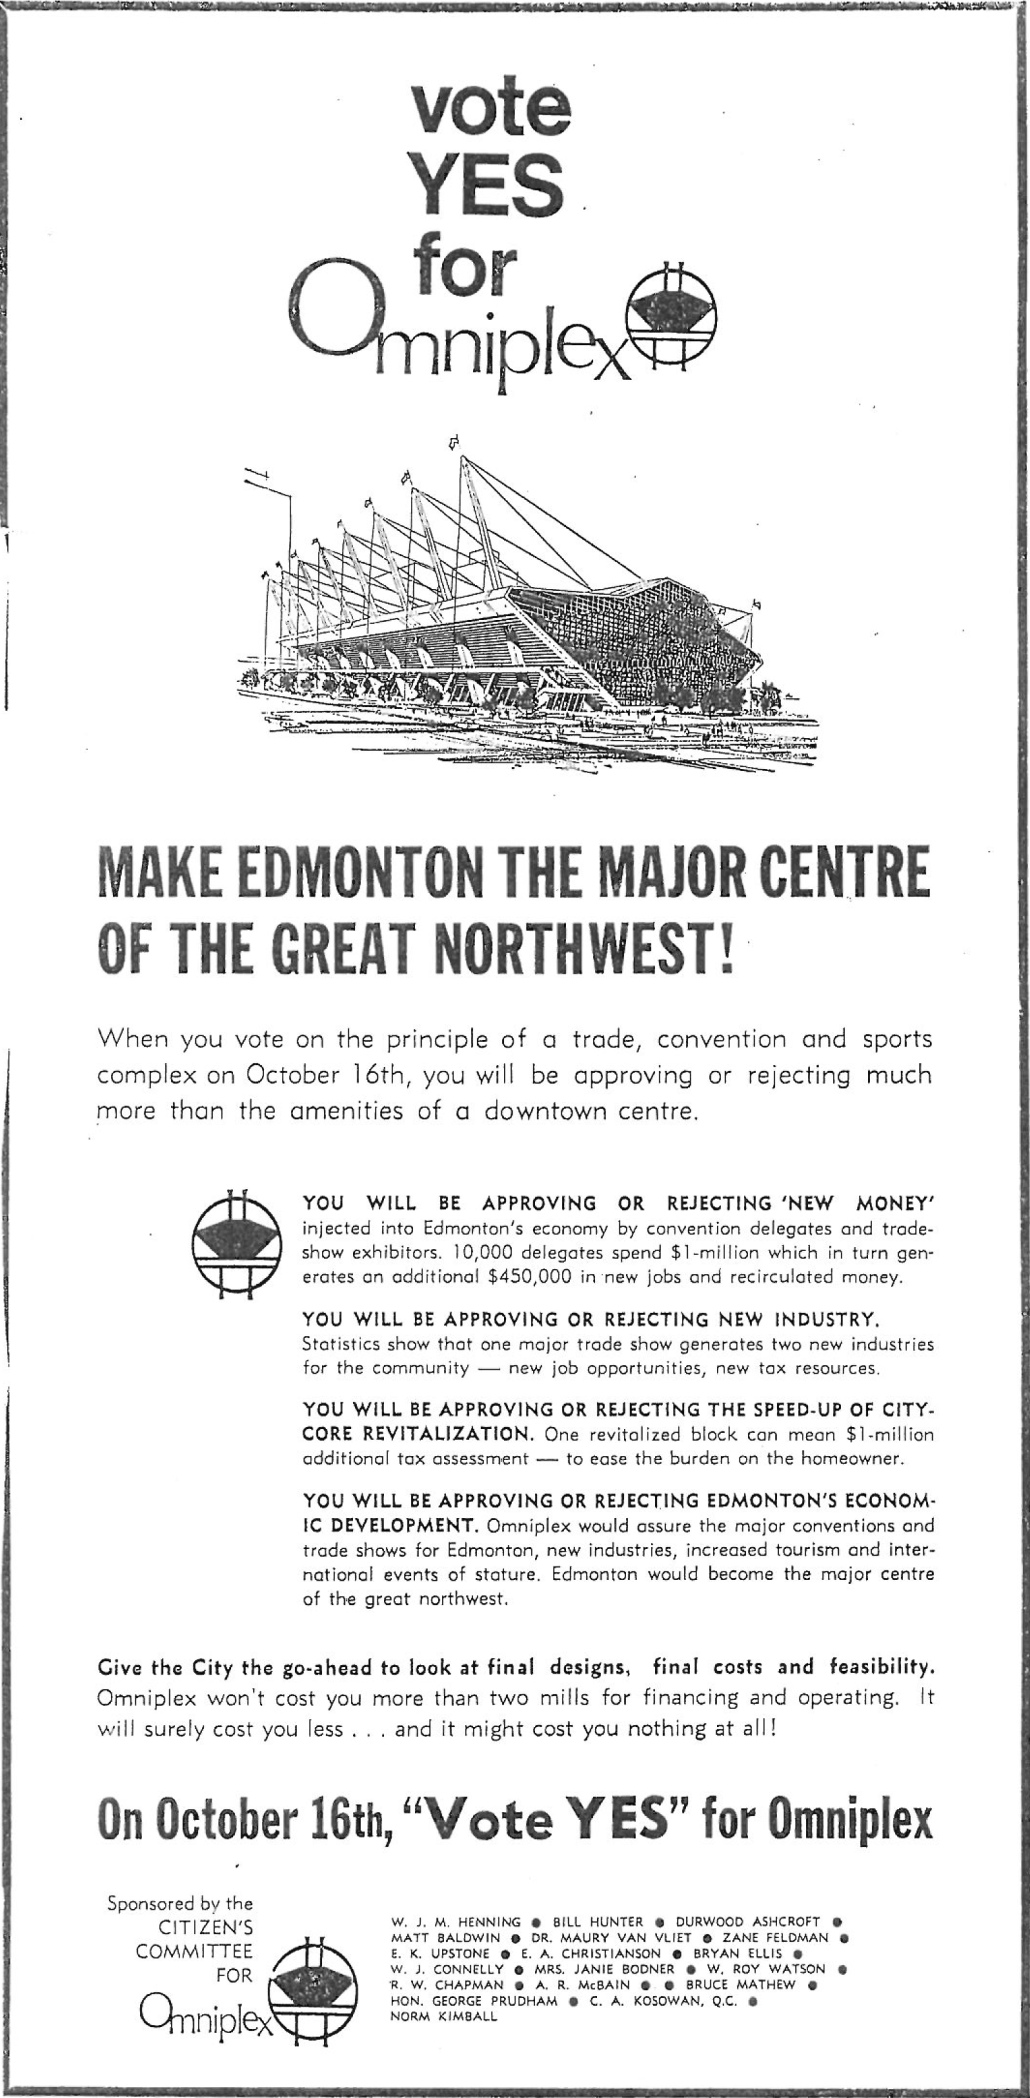 Courtesy of City of Edmonton Archive